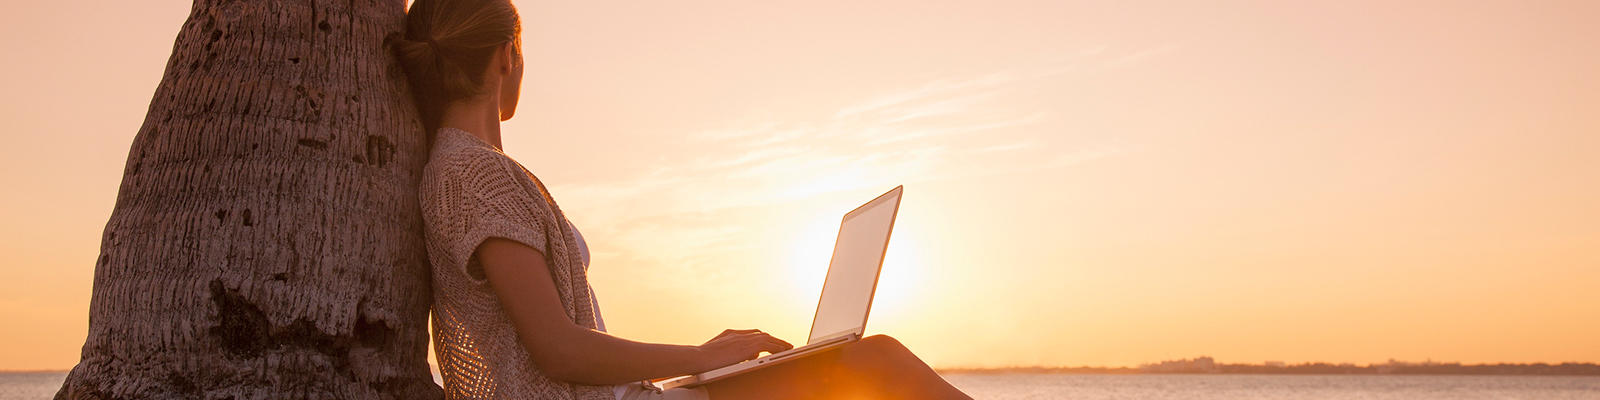 Working on a laptop during a beach sunset